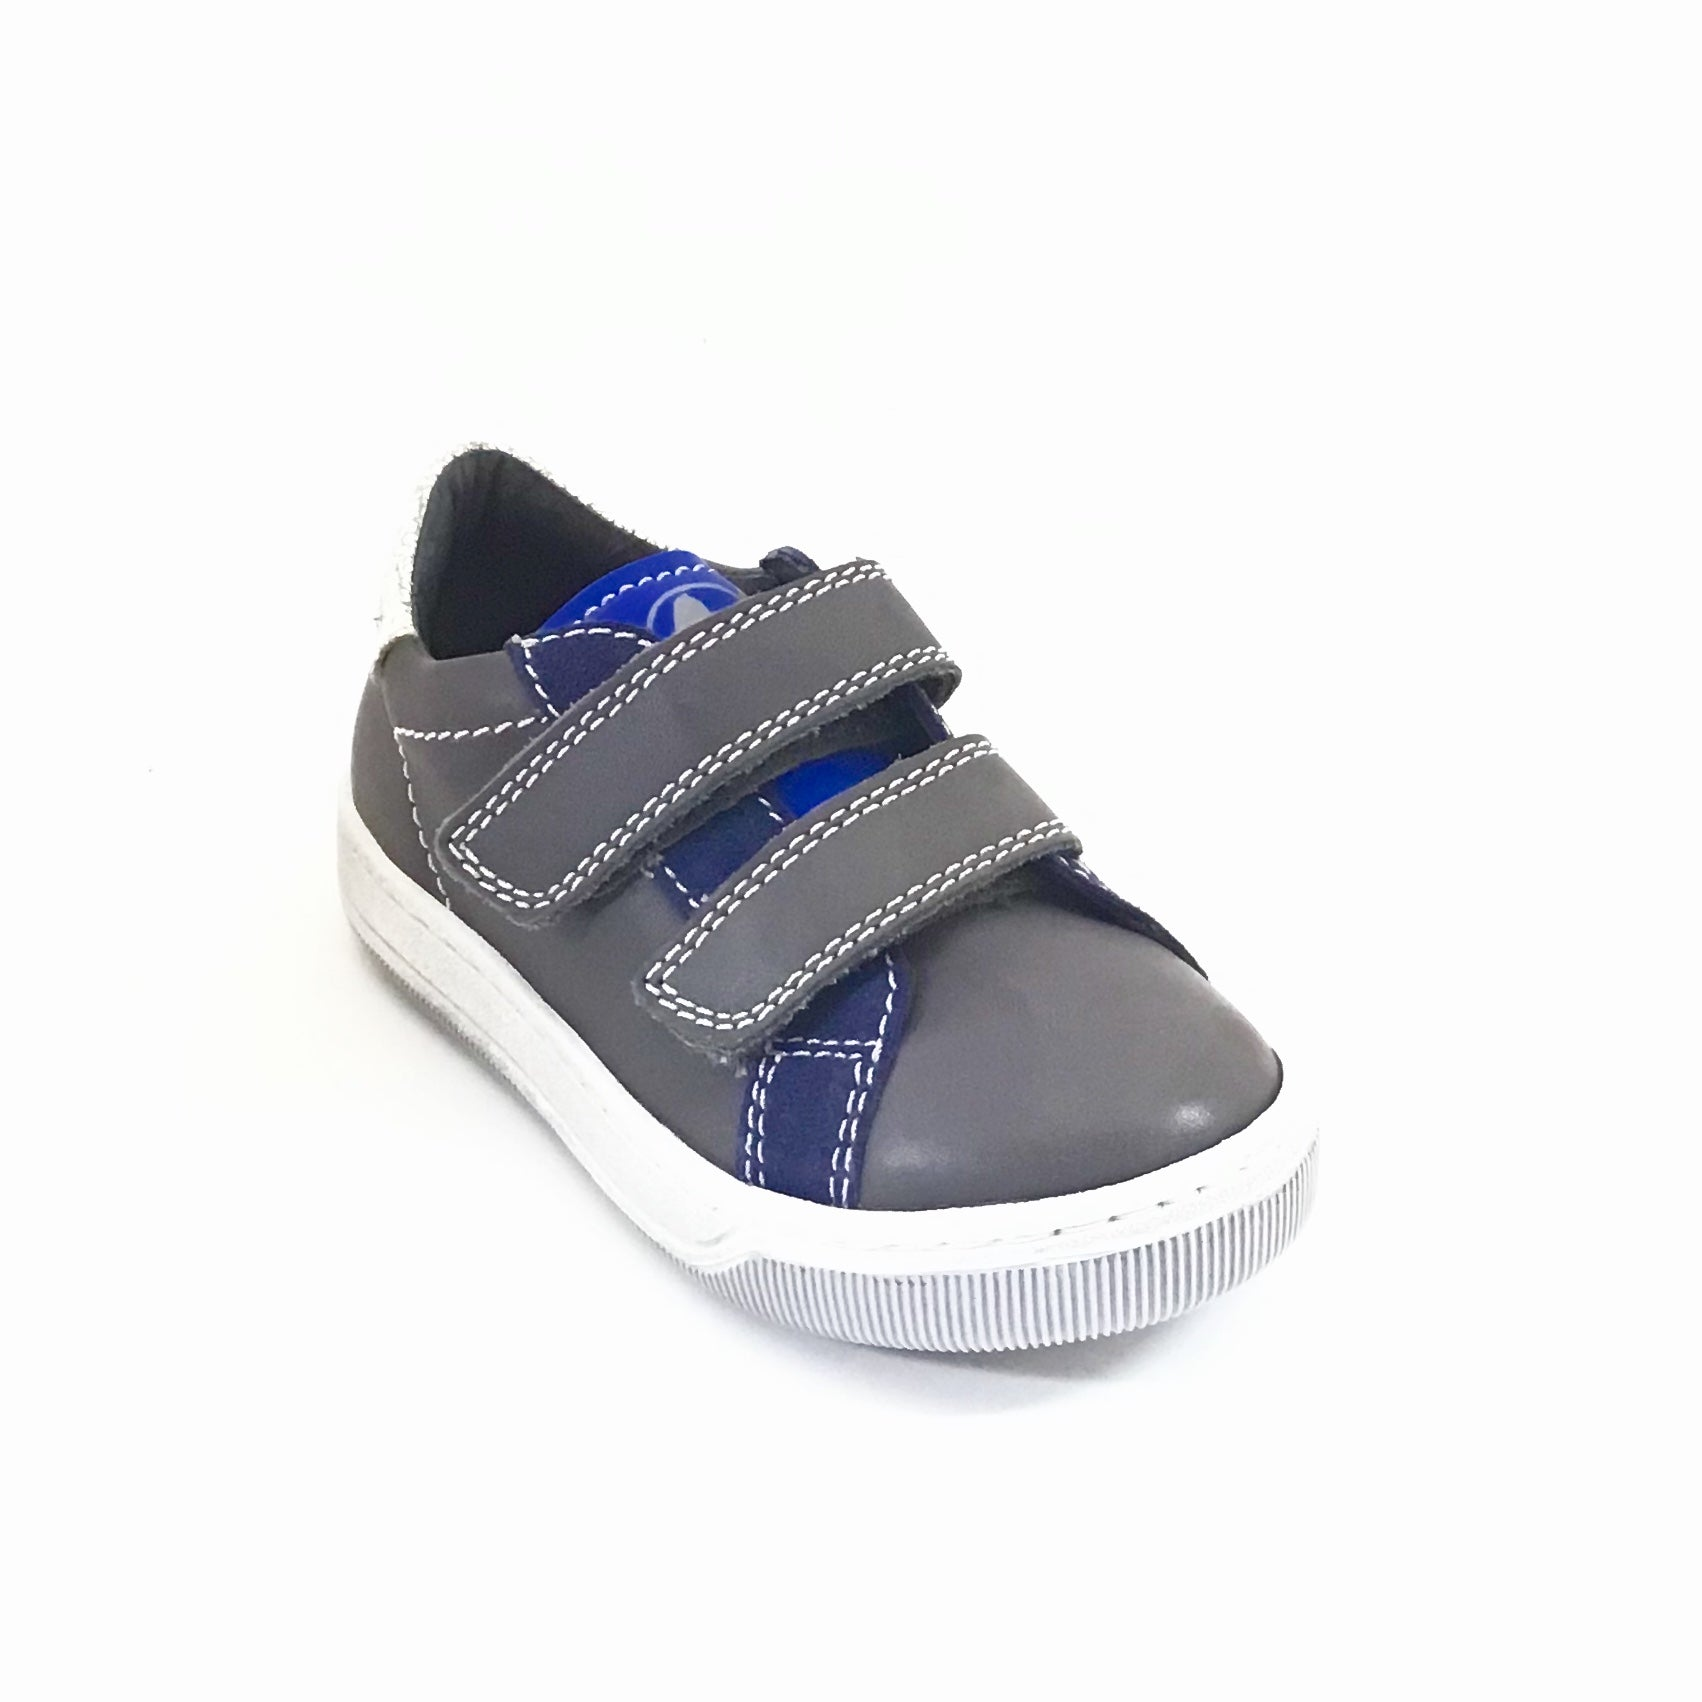 Naturino Charcoal and Navy Sneaker with Double Velcro